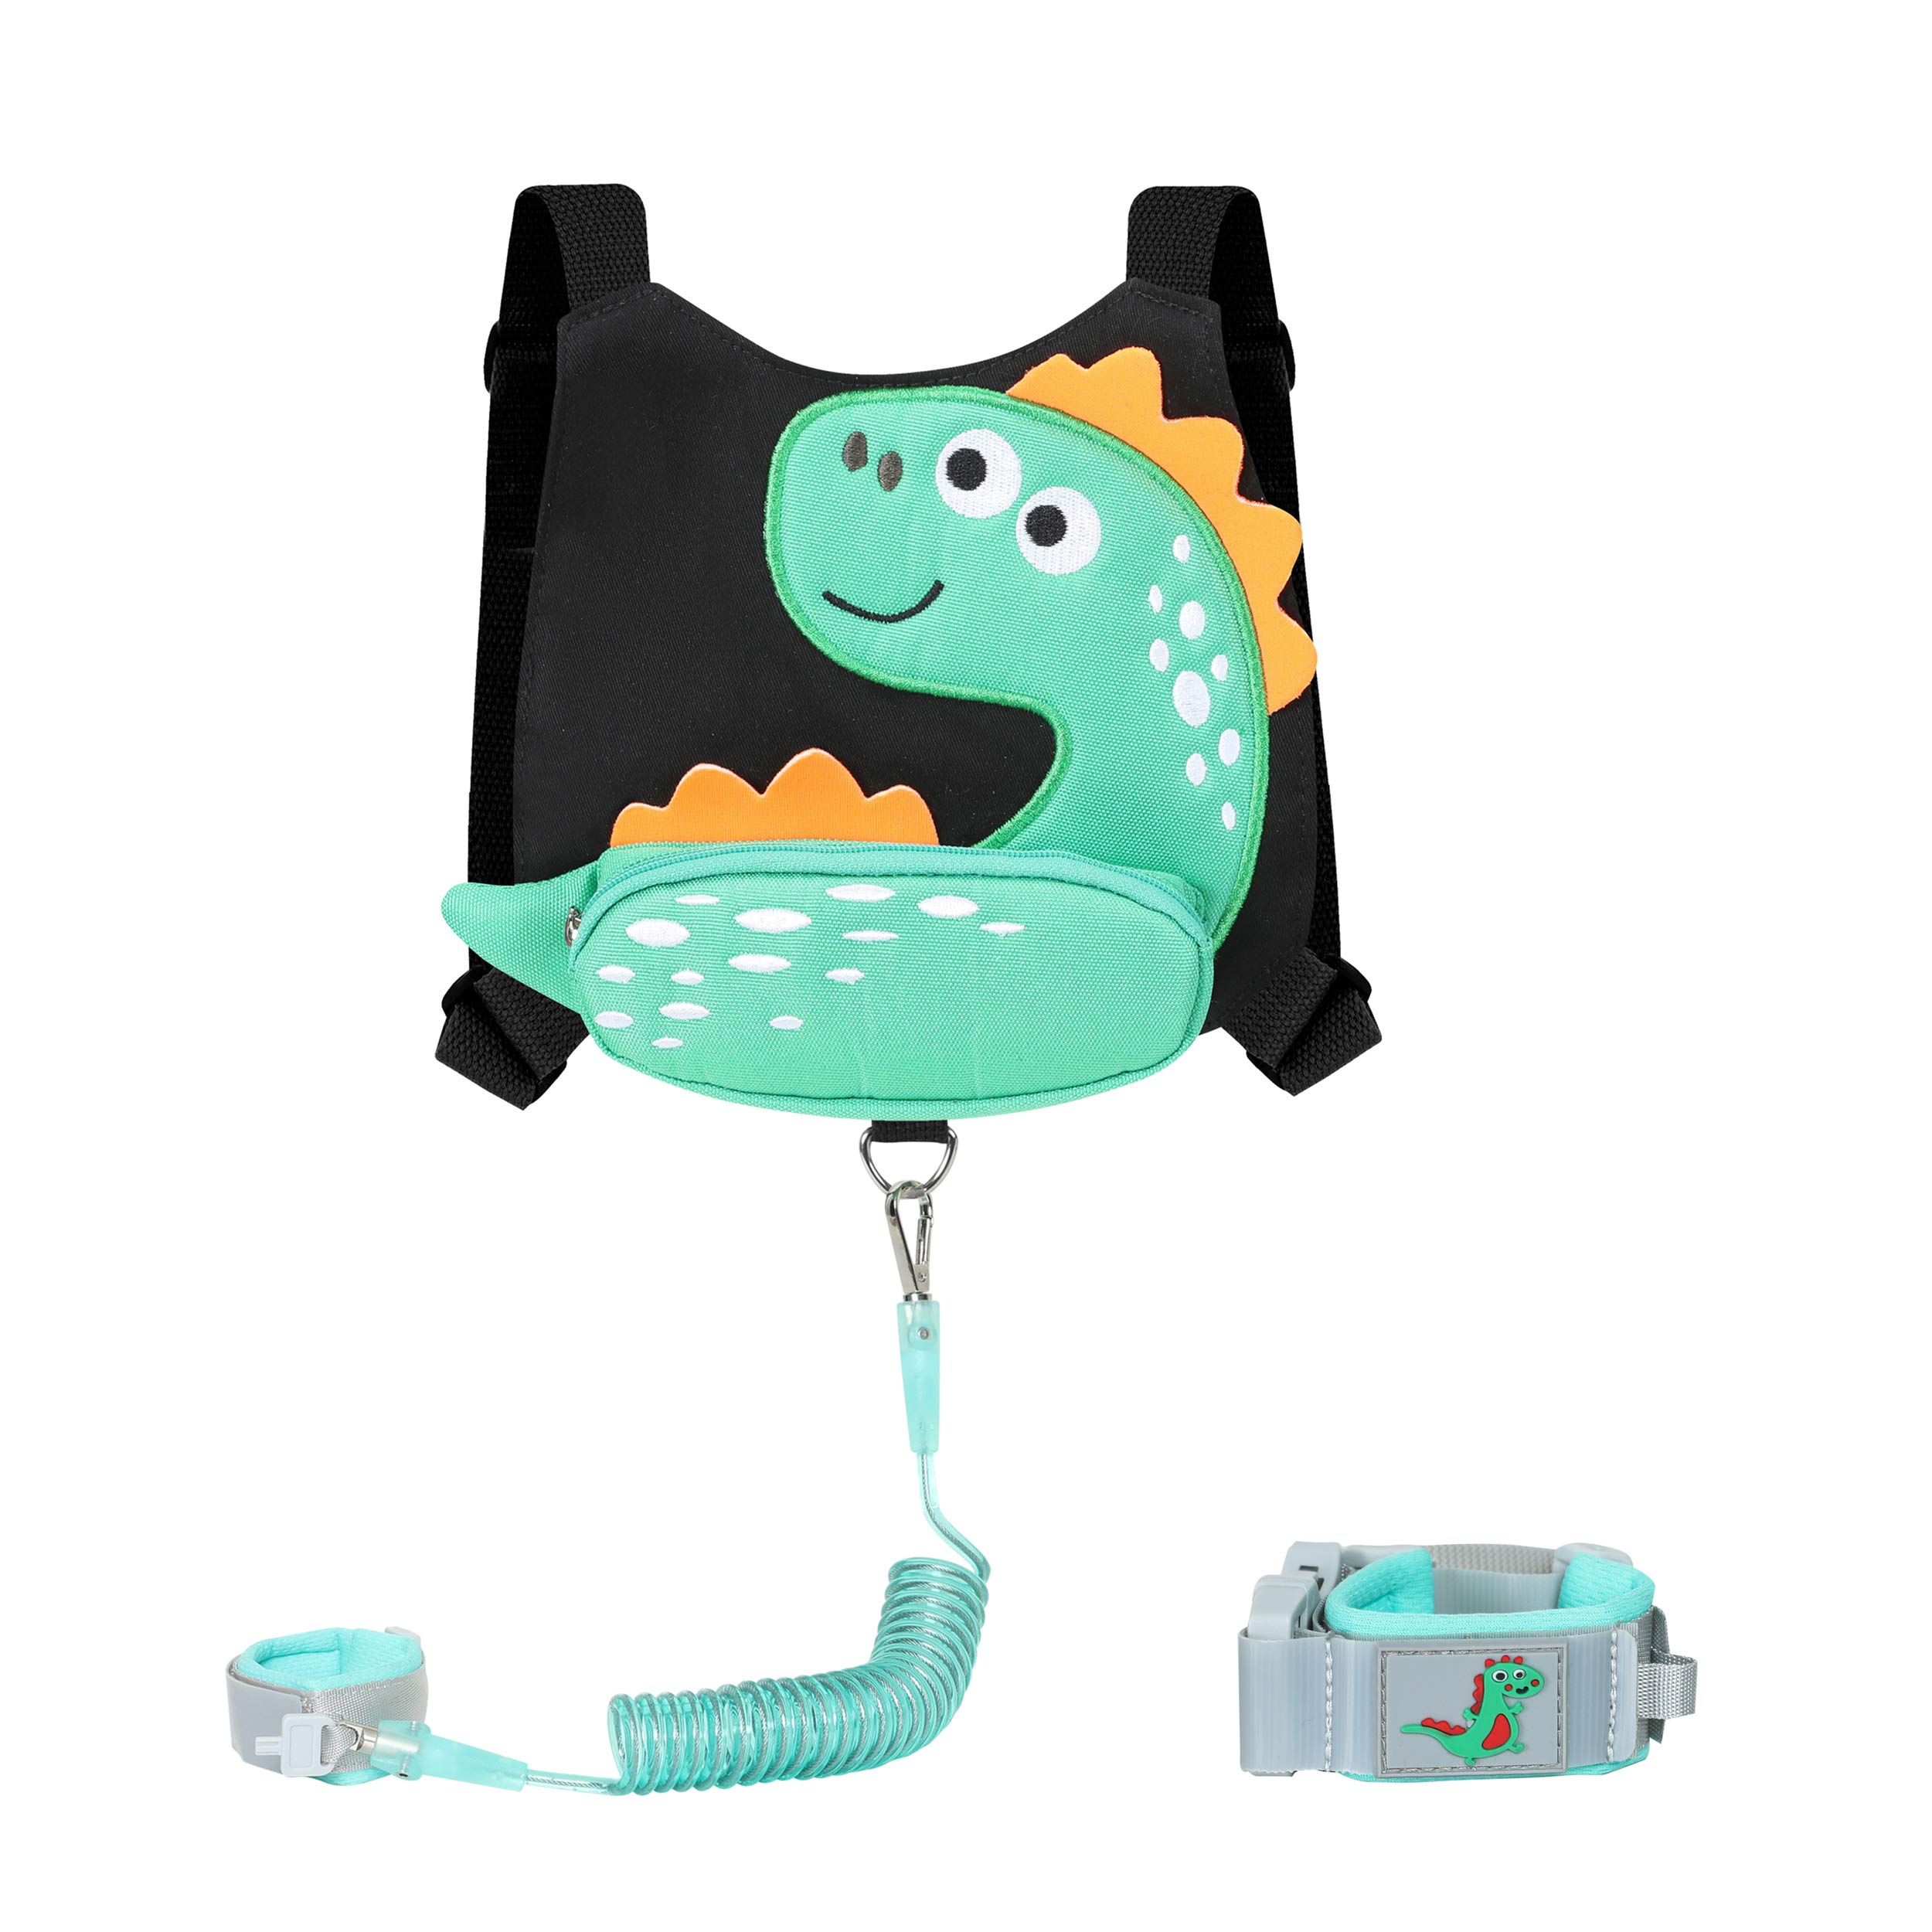 Baby Toddlers Cute Dinosaur Harness with Wrist Leash for Kid Walking Safety 1.5 to 3 Years (Little Dinosaur Black)